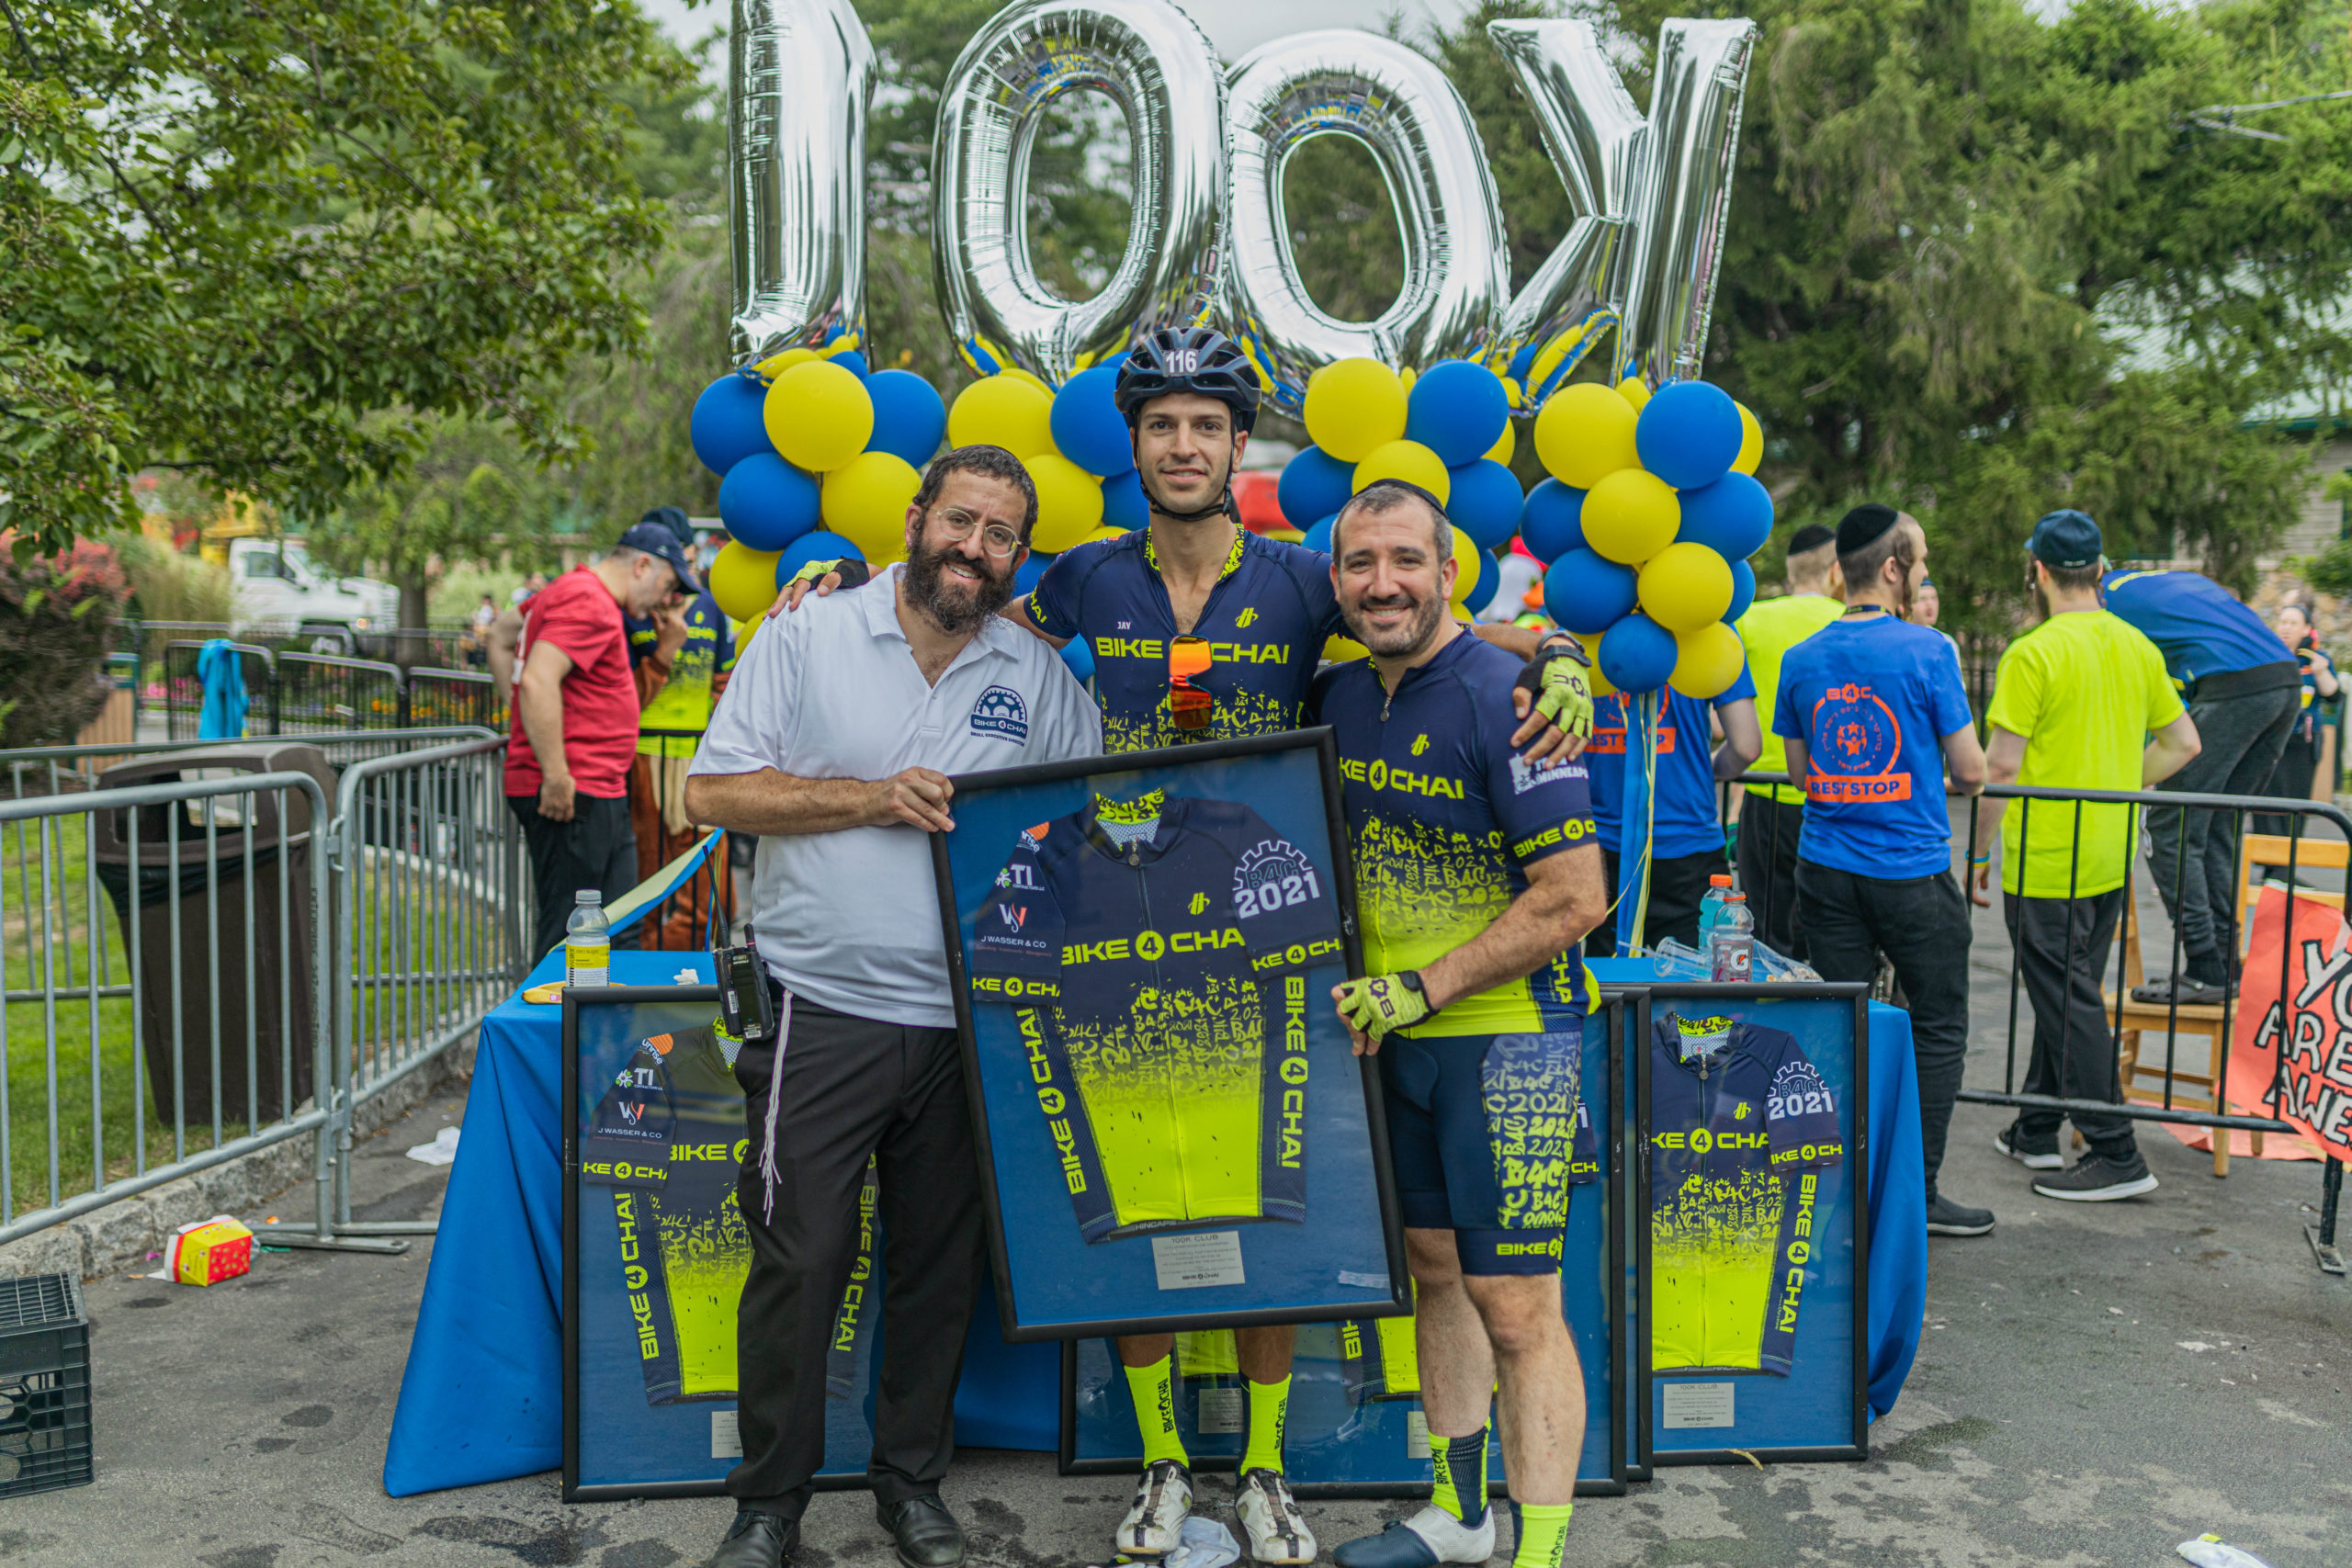 GALLERY: Bike4Chai 21′ bike-a-thon finishes off with a success